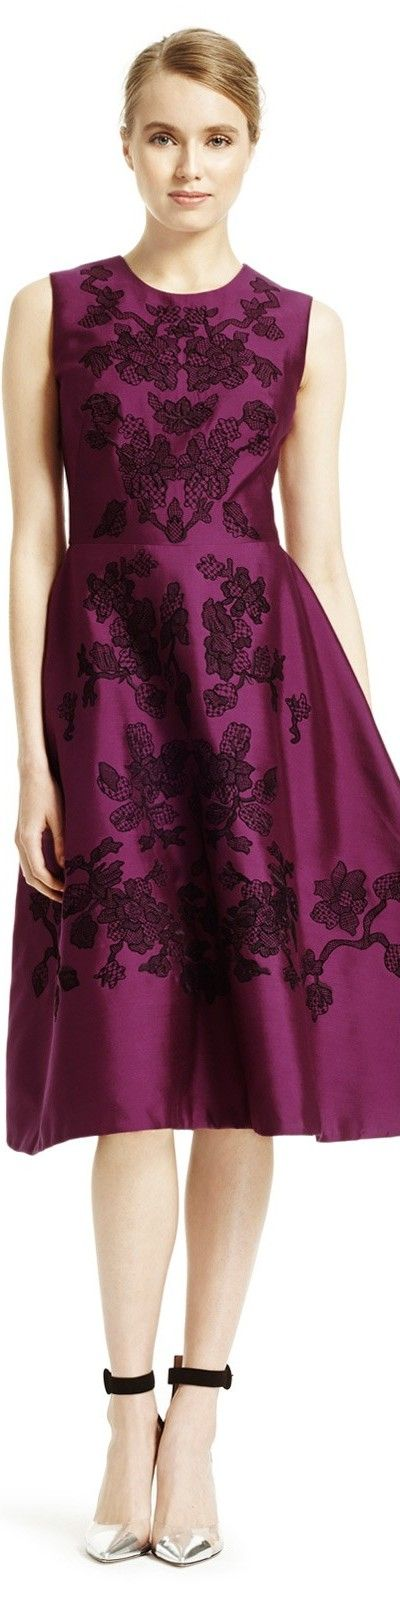 Purple Evening & Formal Dresses. Clothing & Shoes / Women's Clothing / Dresses / Evening & Formal Dresses. of Results. Sort by: Xscape Womens Evening Dress One Shoulder Full-Length. SALE. R&M Richards Plum Cold Shoulder Gown.